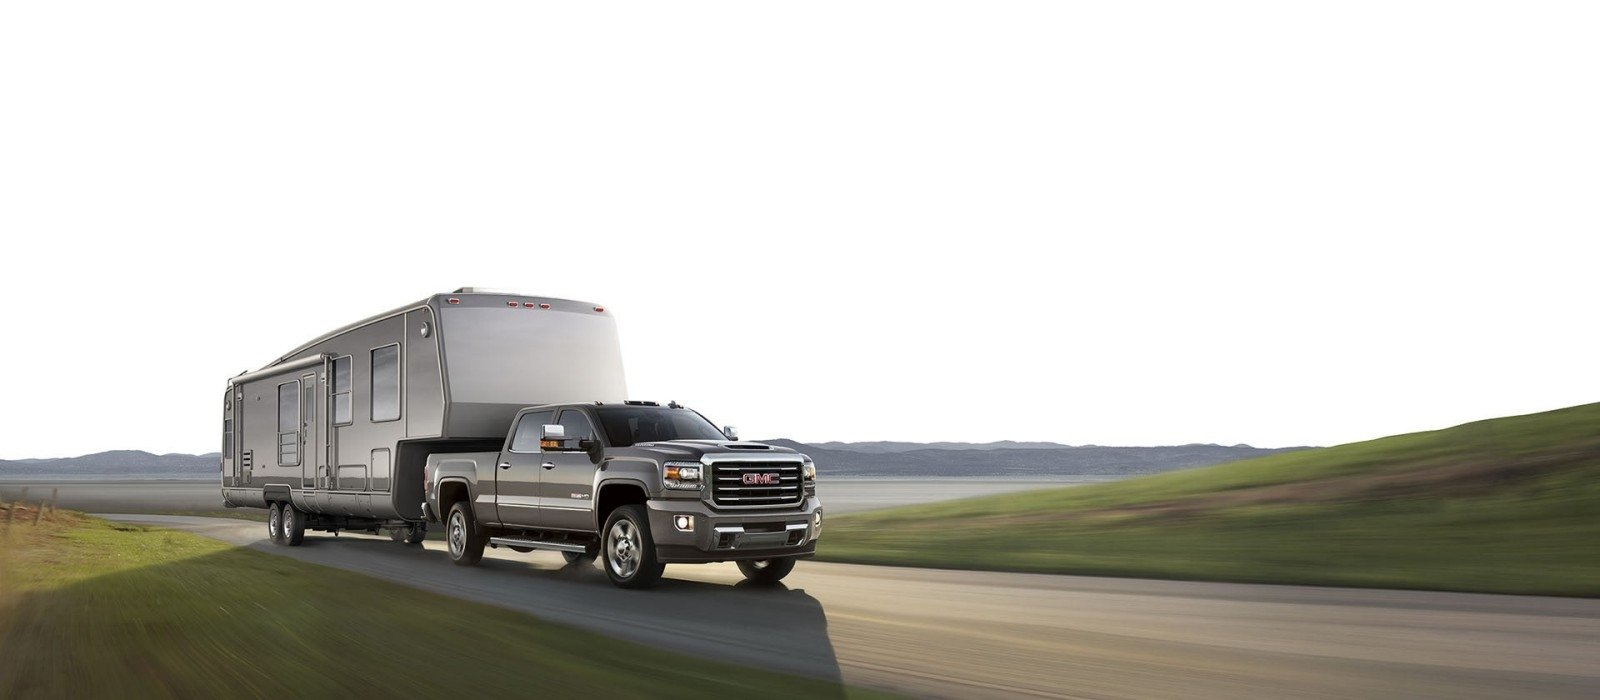 2017 GMC Sierra 2500 Towing